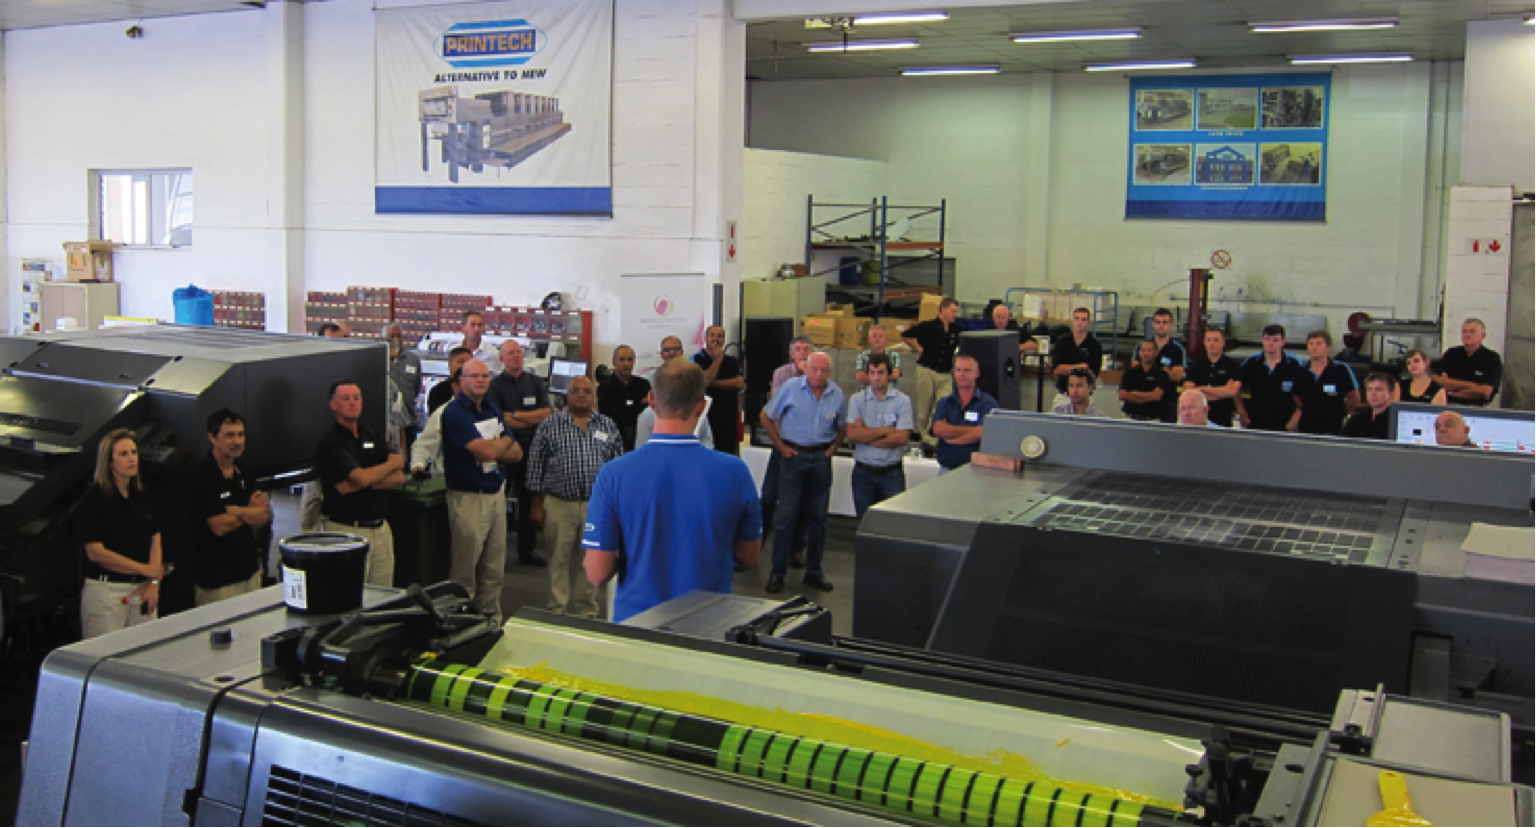 Over 200 visitors attended the latest AMS LED UV Open House organized by Printech in Cape Town, South Africa, over the second week of March 2015